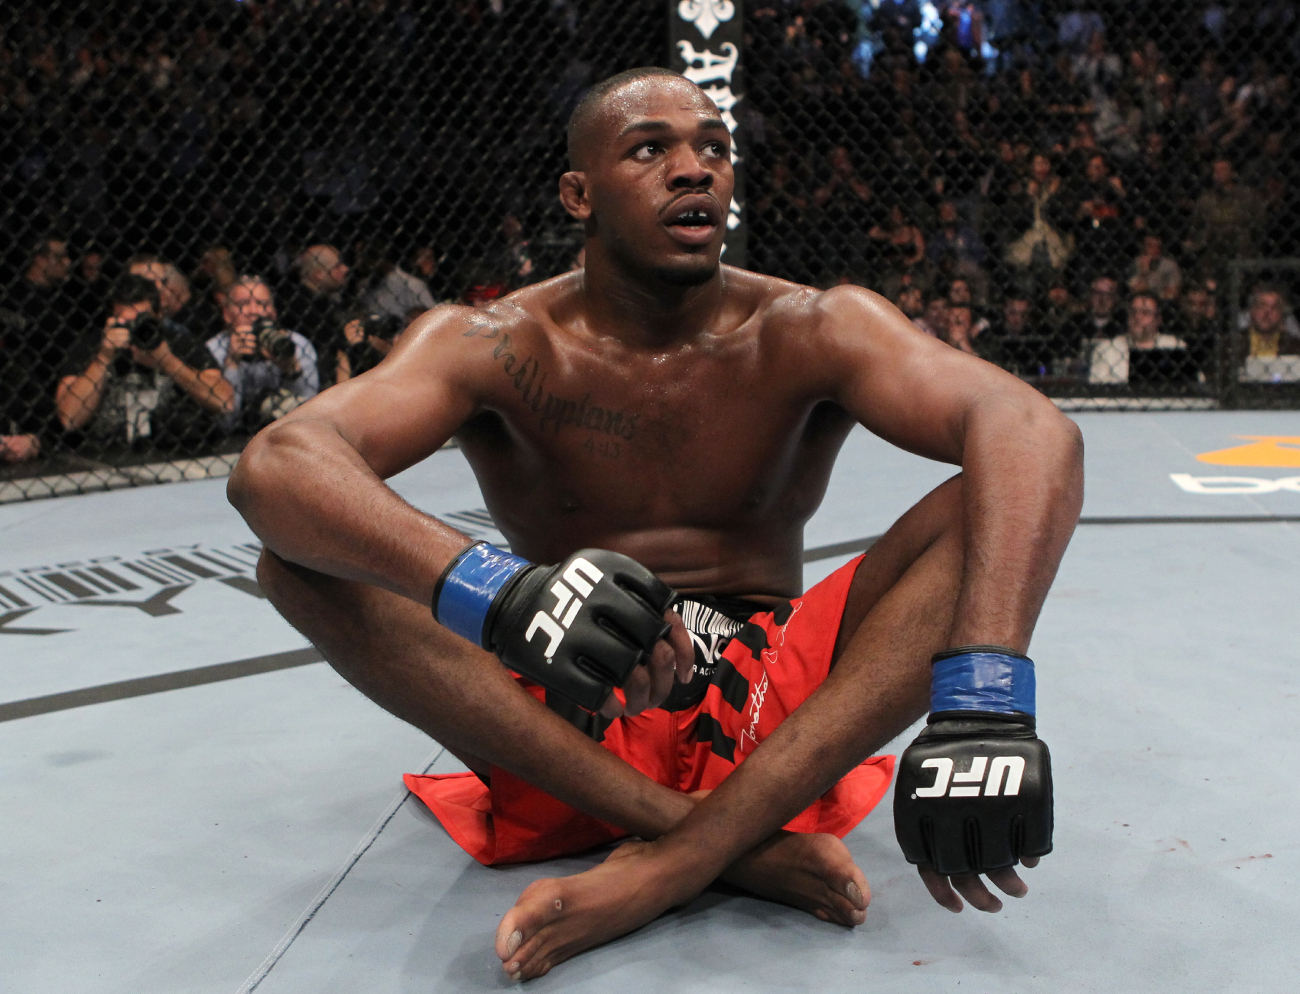 Jon Jones sitting on the UFC mat